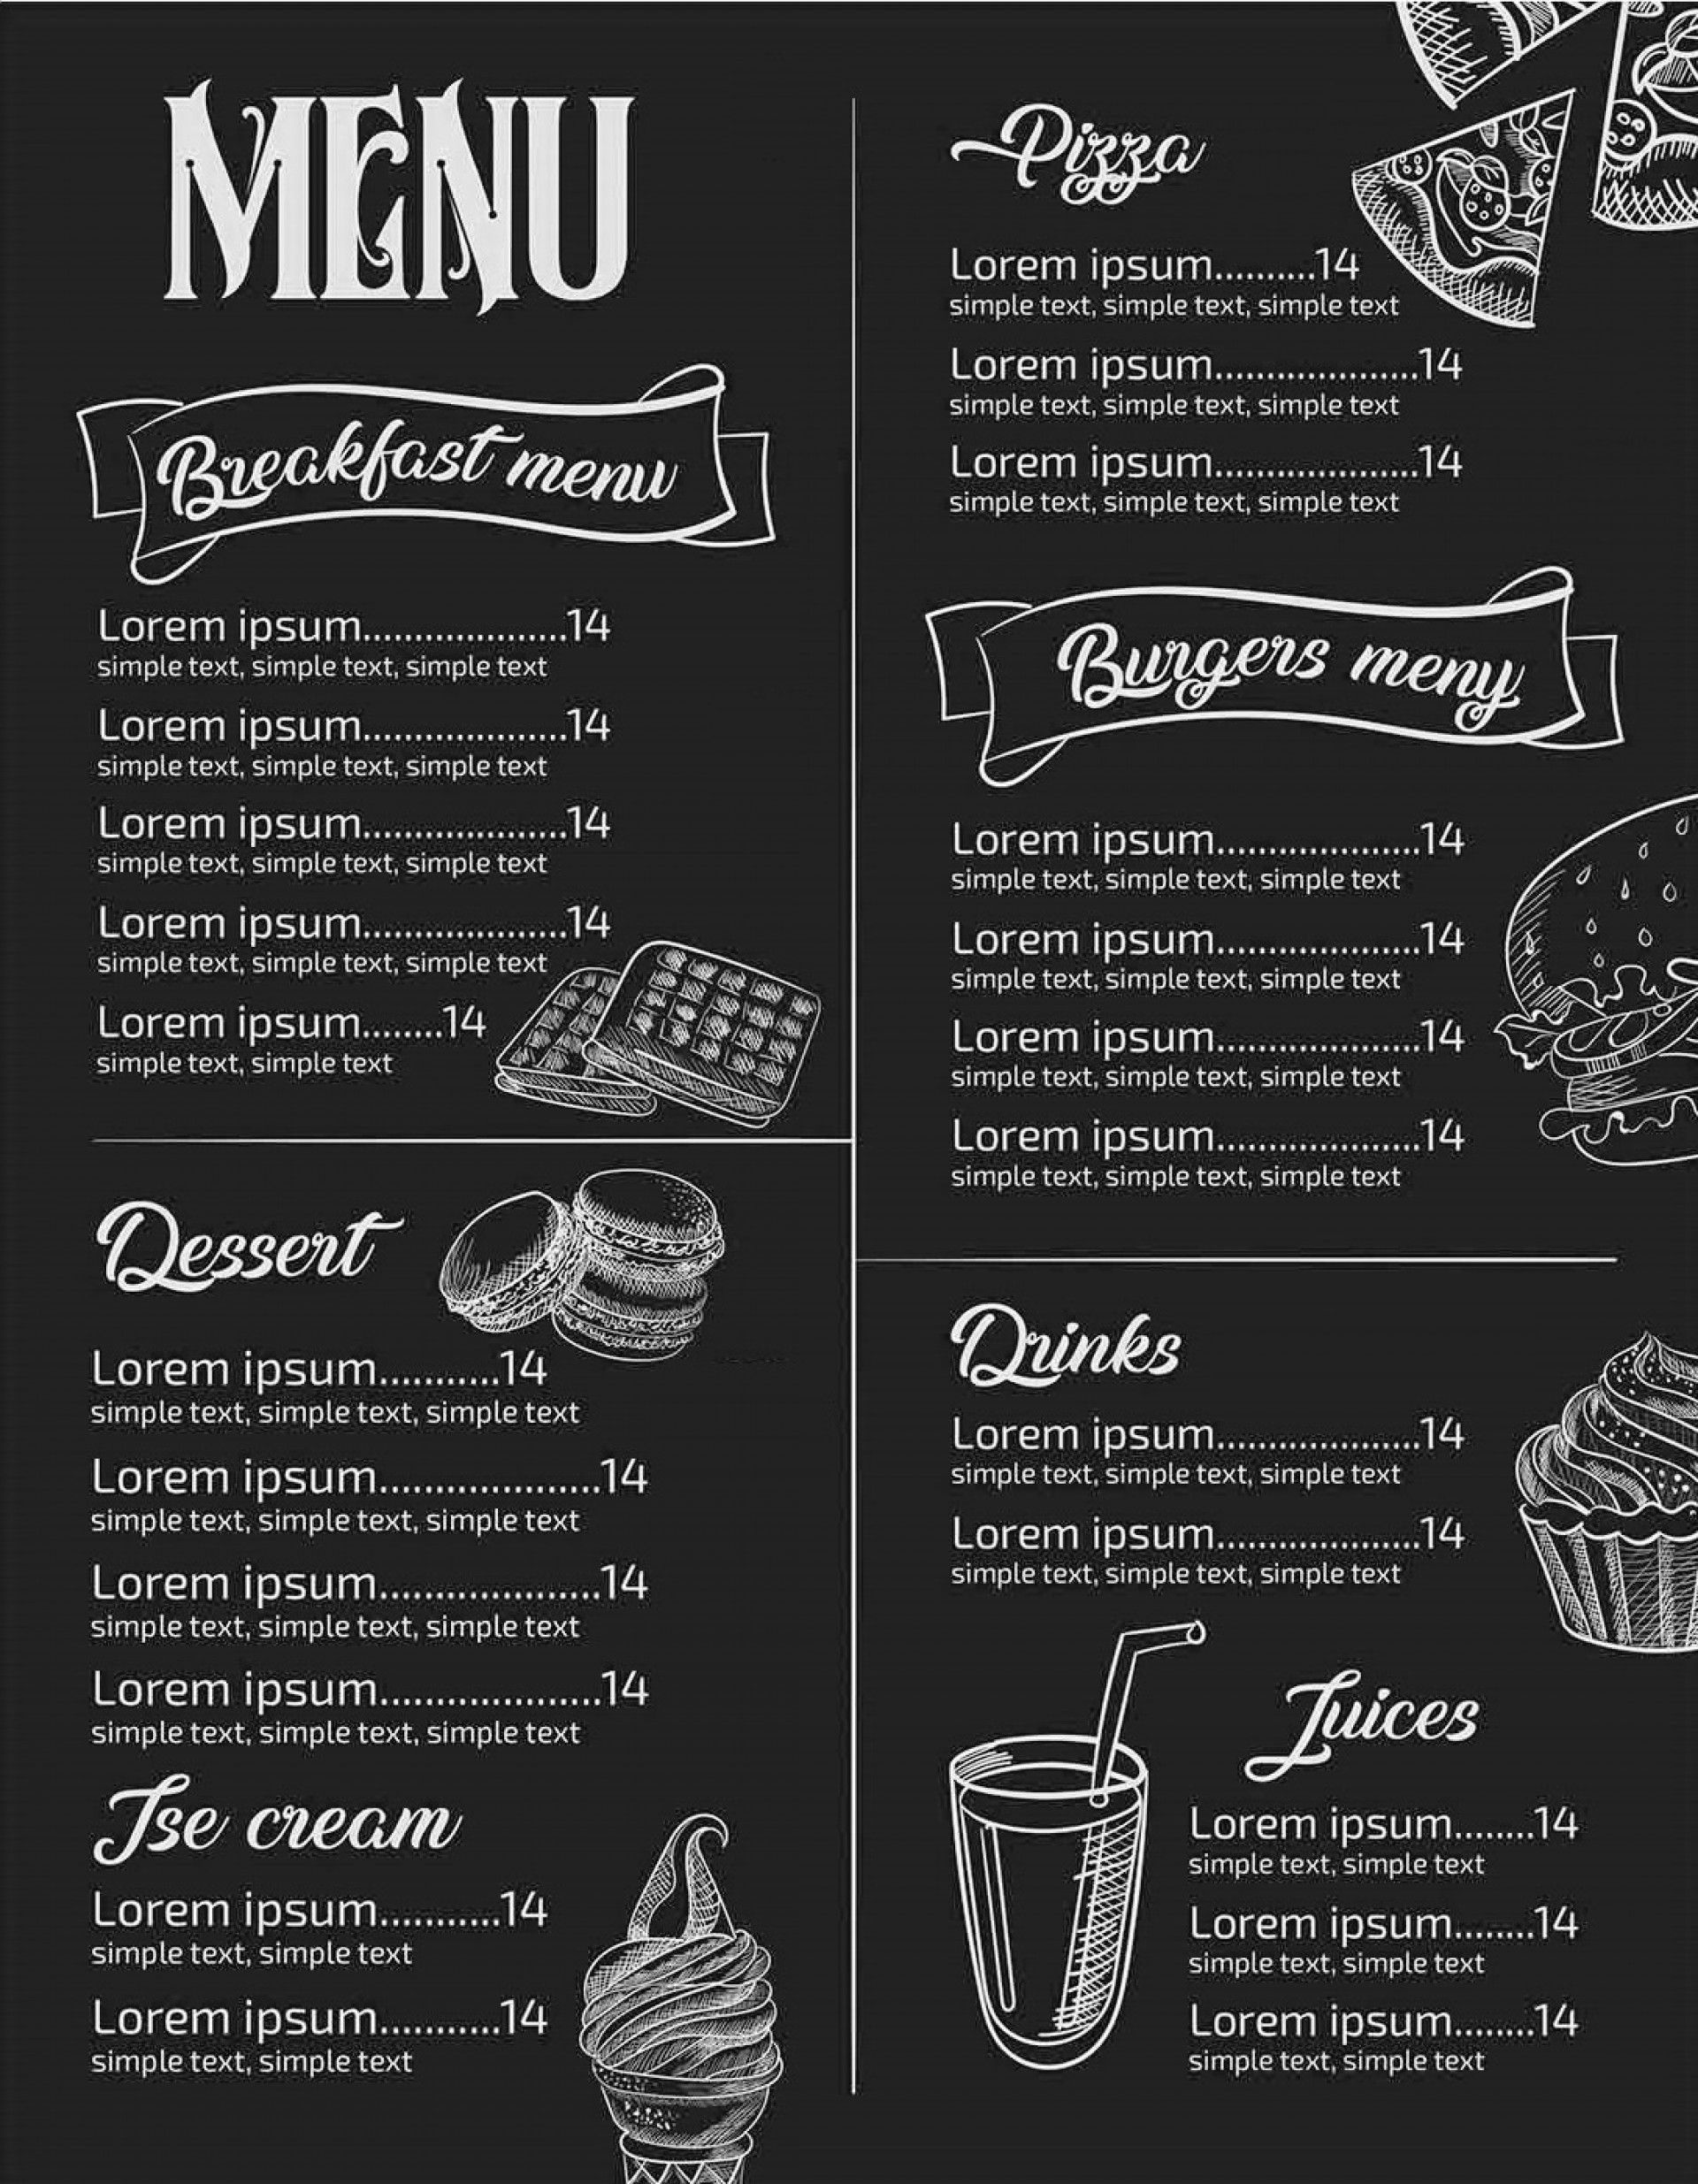 003 Remarkable Menu Template Free Download For Restaurant Picture  Word PsdFull